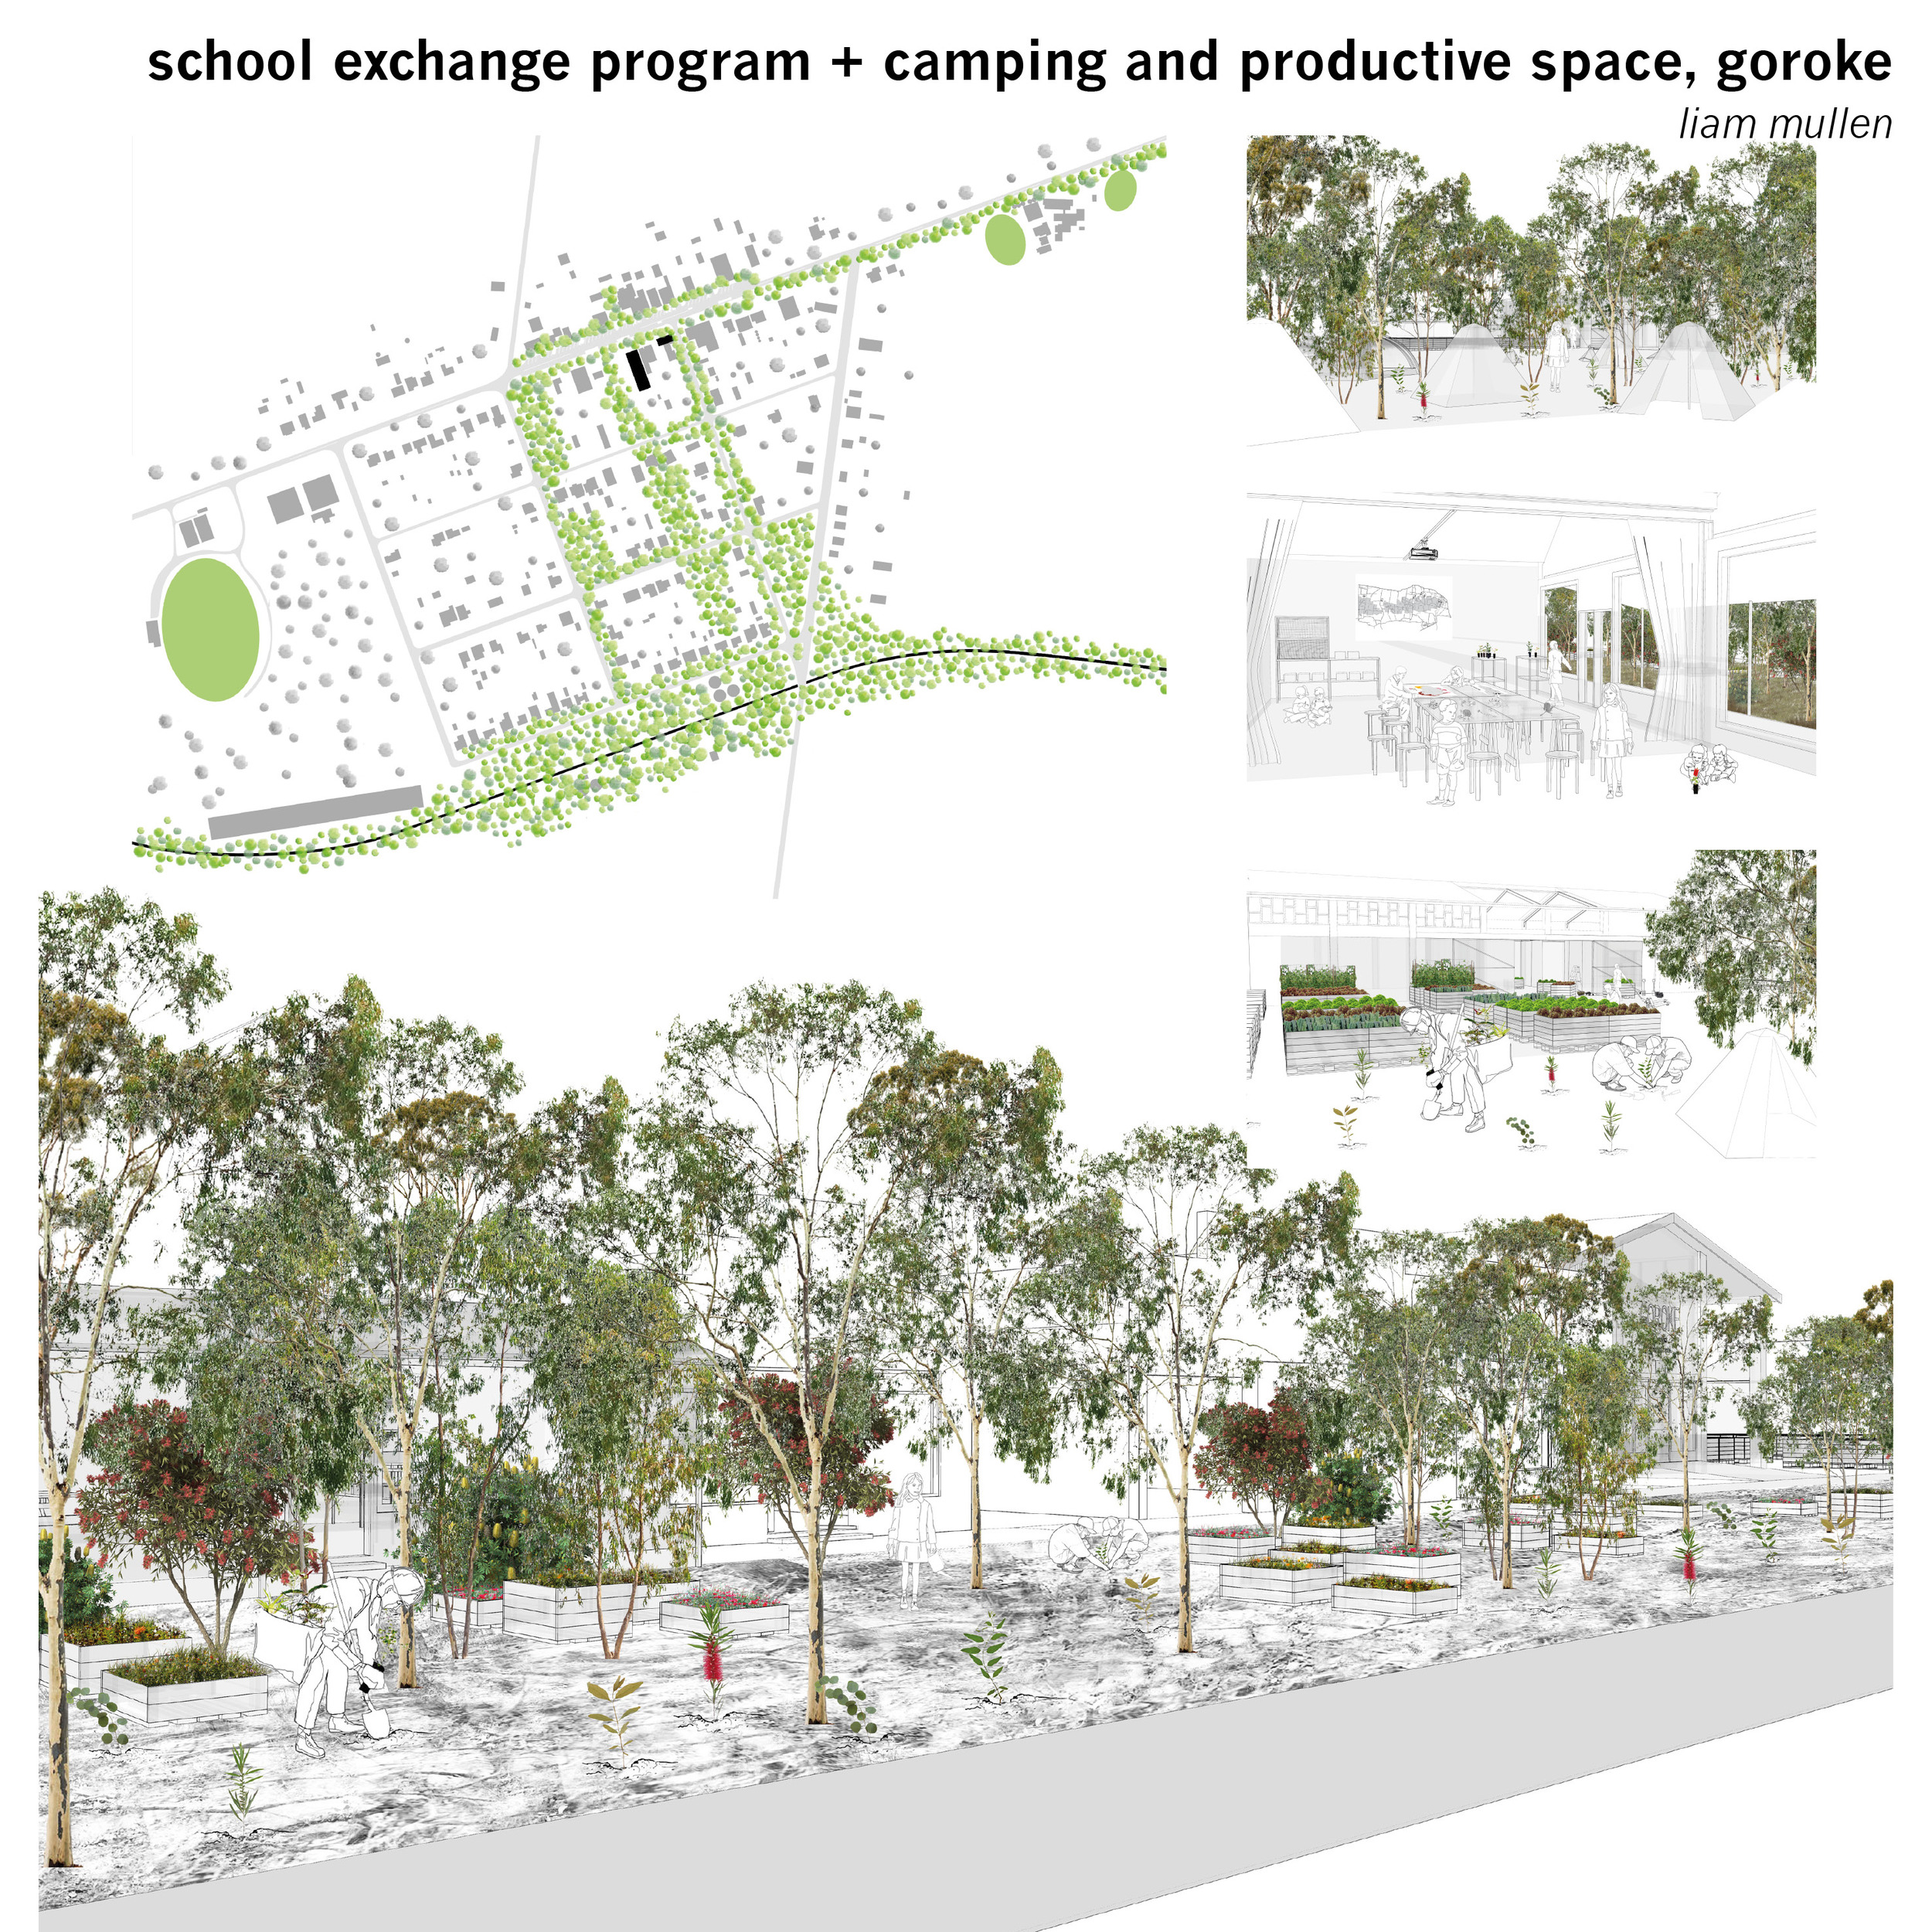 Goroke P-12 College operates a student exchange program with Melbourne (and other urban) school partners with a focus on an agricultural and environmental curriculum,the town itself becomes an expanded classroom of propagation and regenerative spaces.